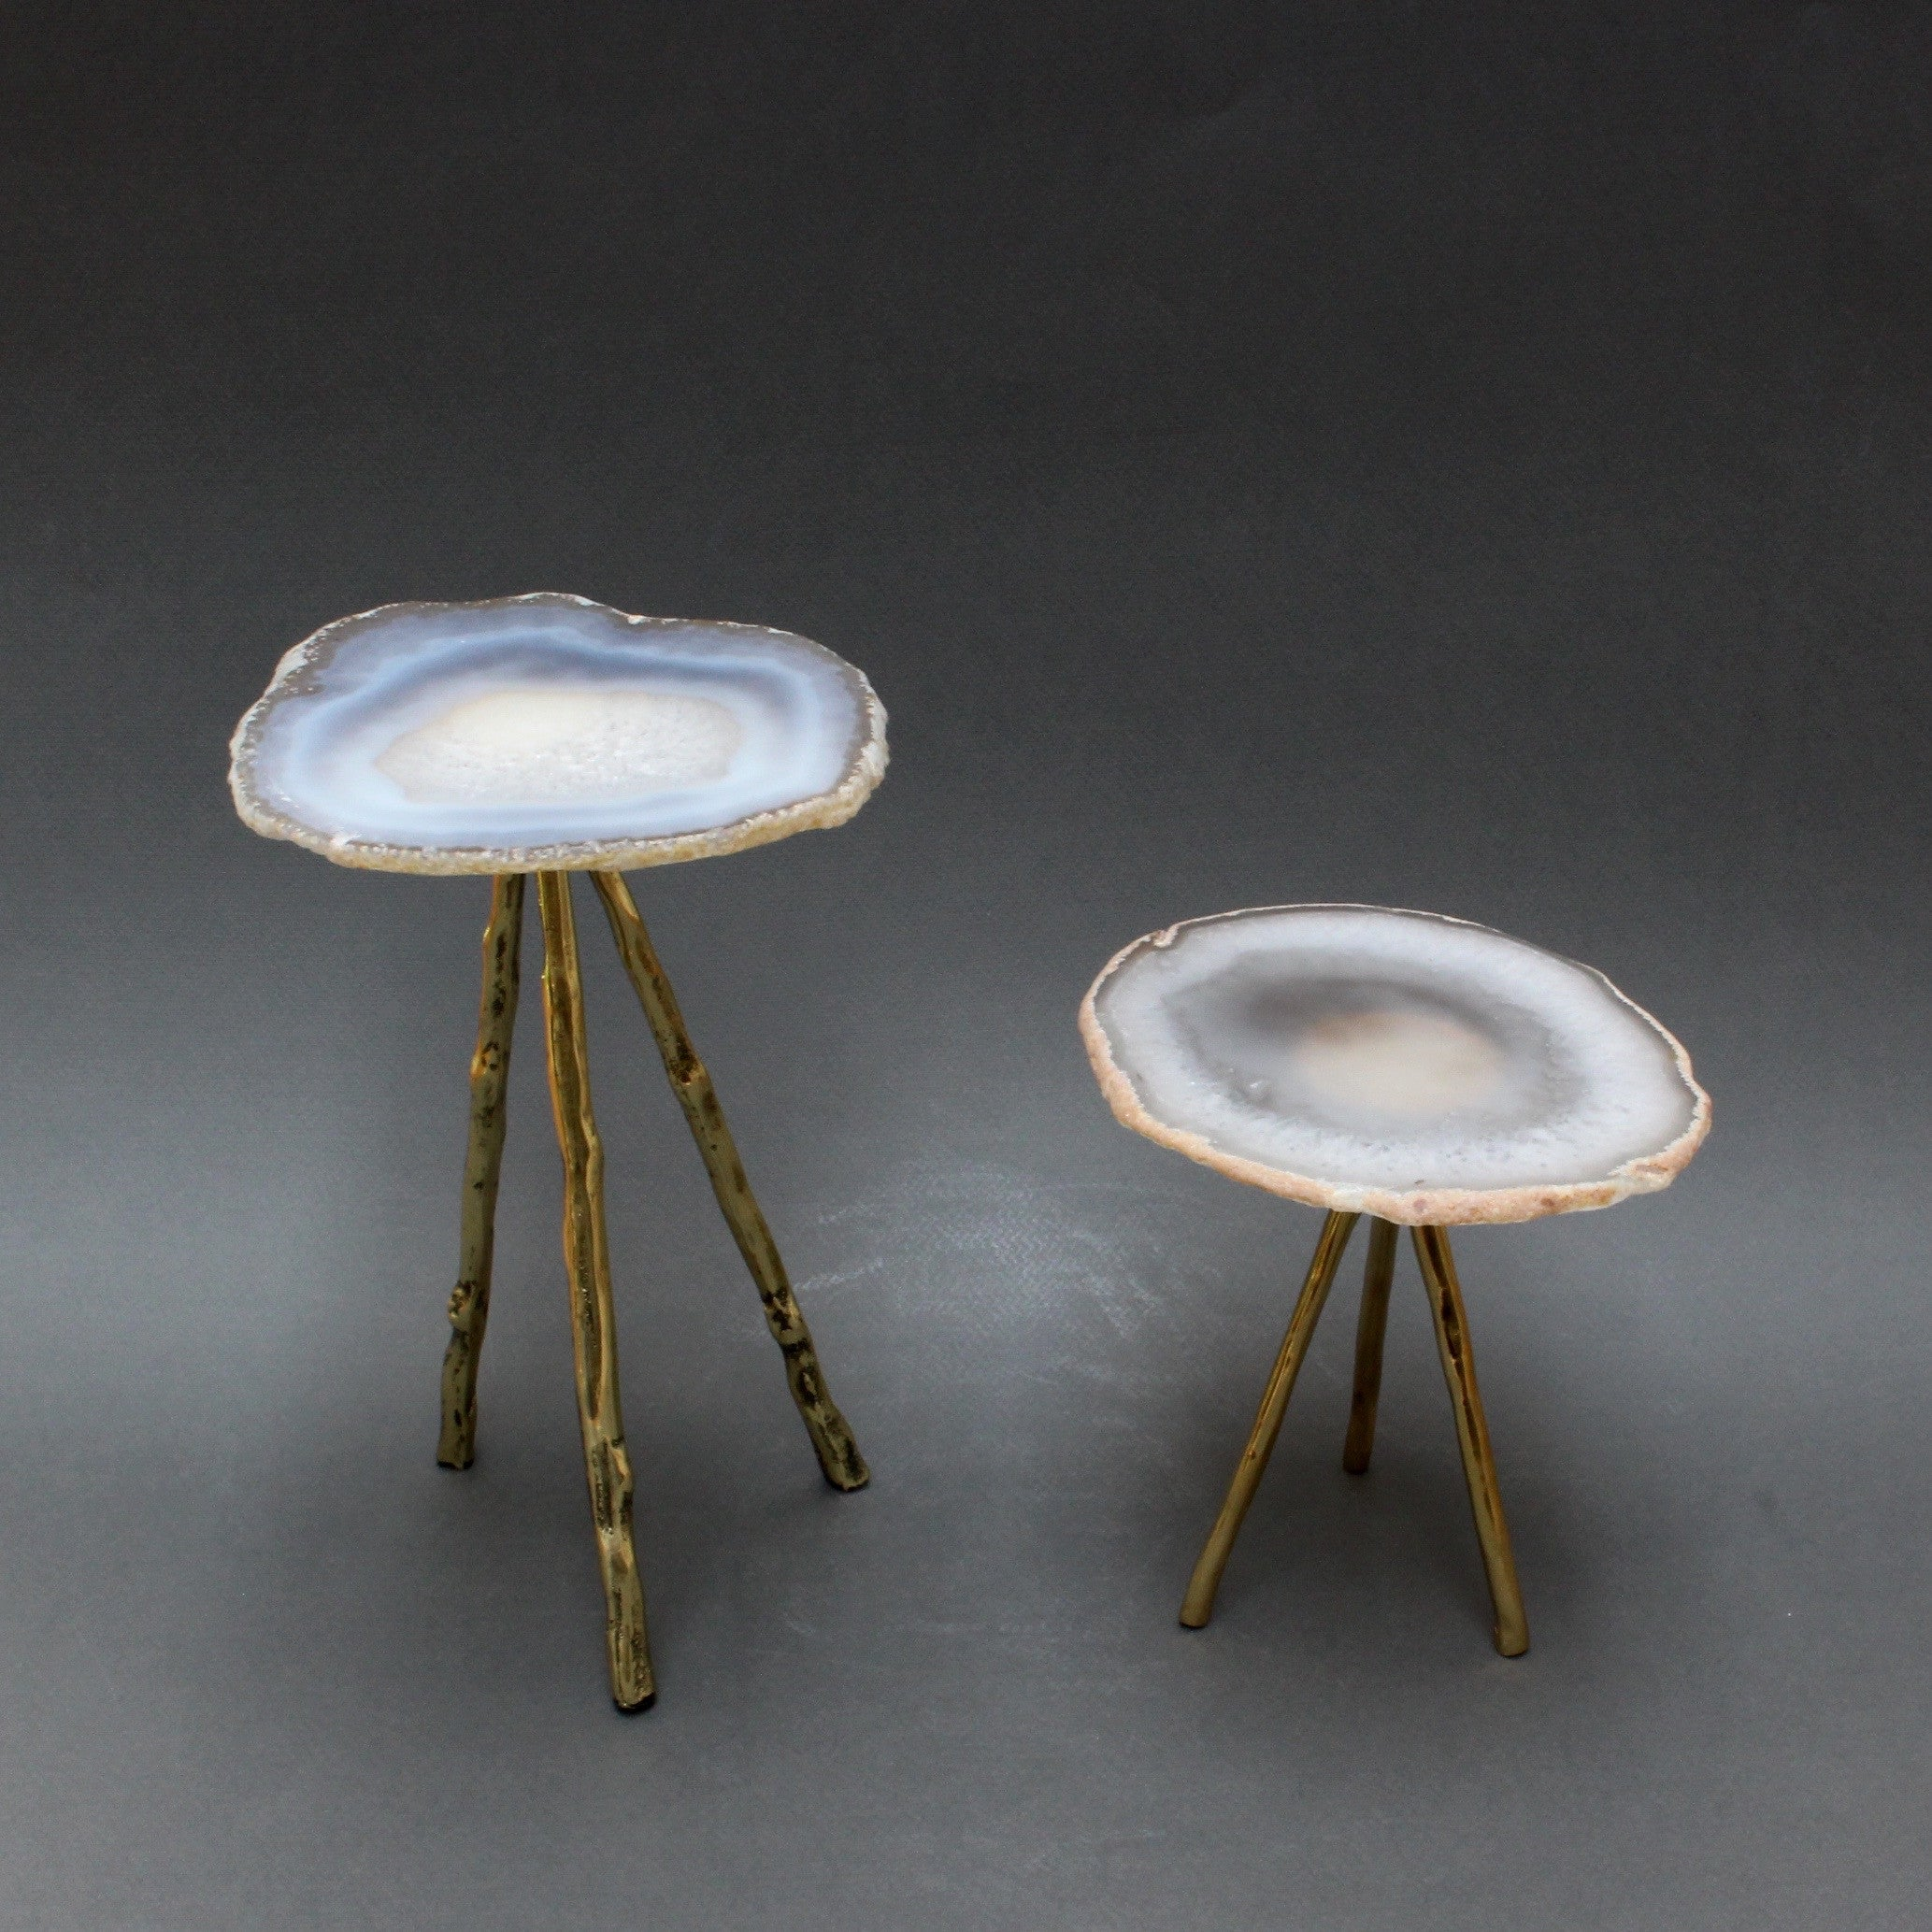 Agate Display and Plant Stand on Brass Legs - Small